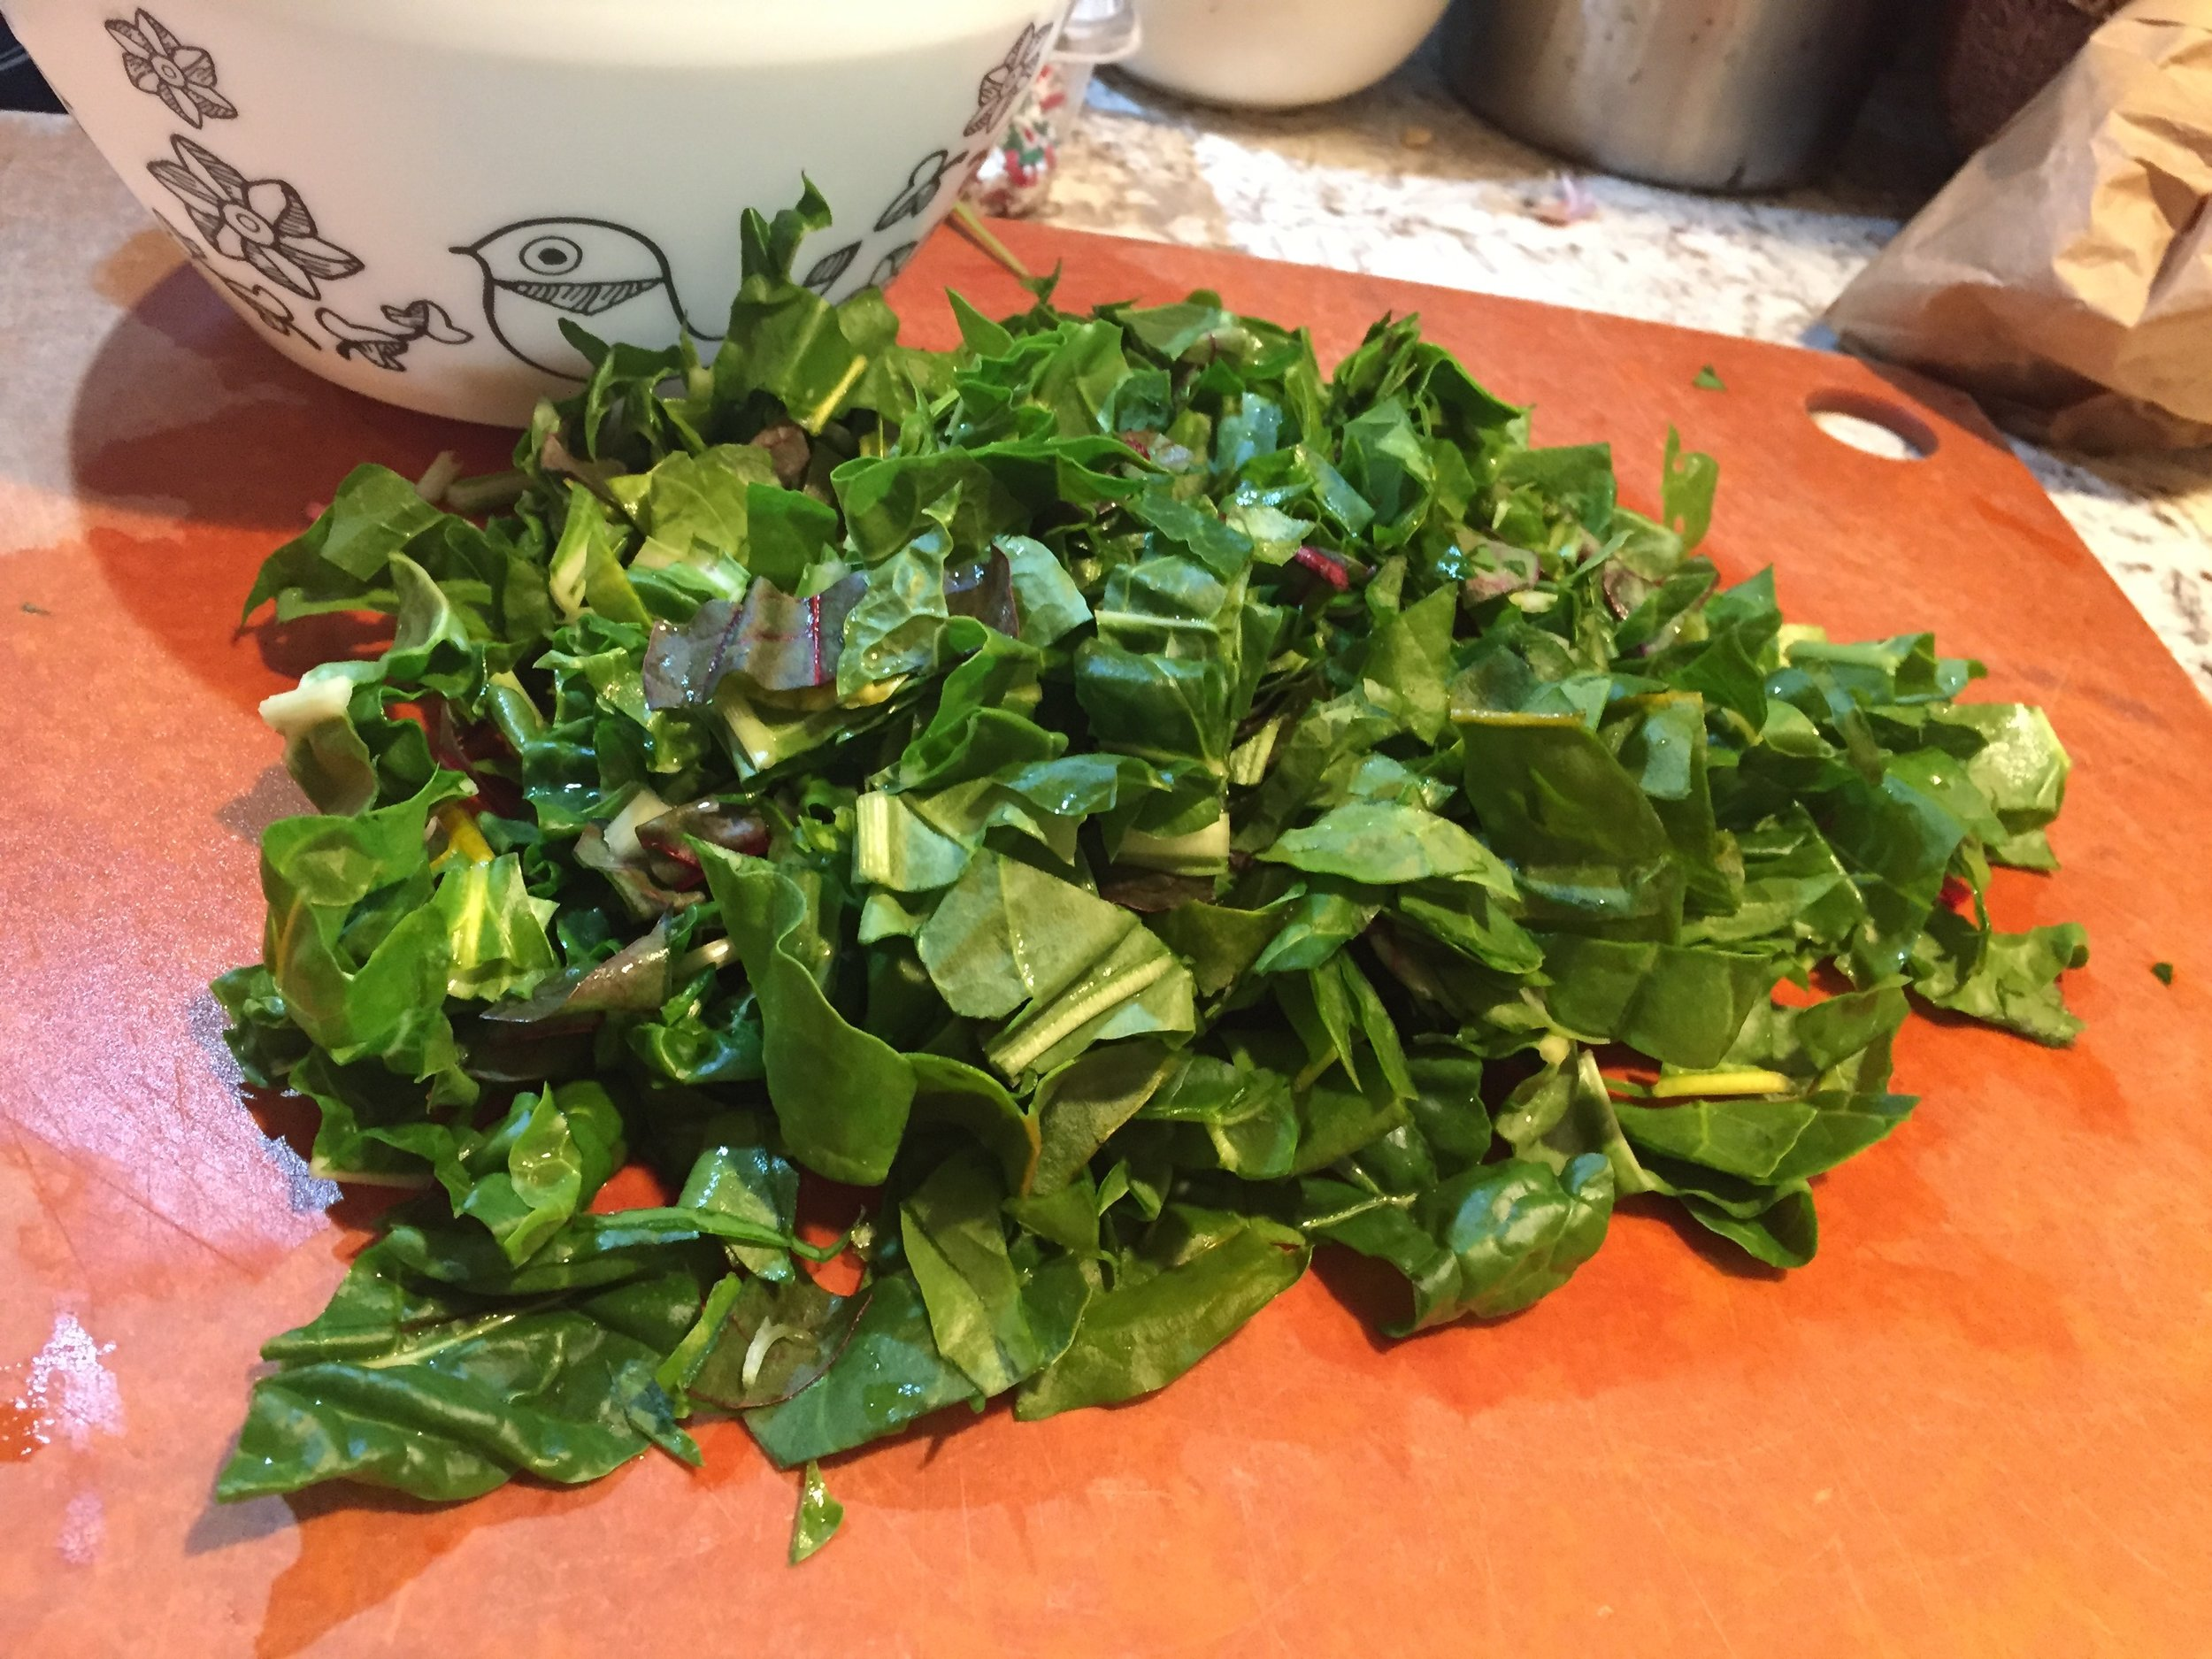 Baby Swiss chard, chopped roughly and ready to wilt in the sunny gingery dal.